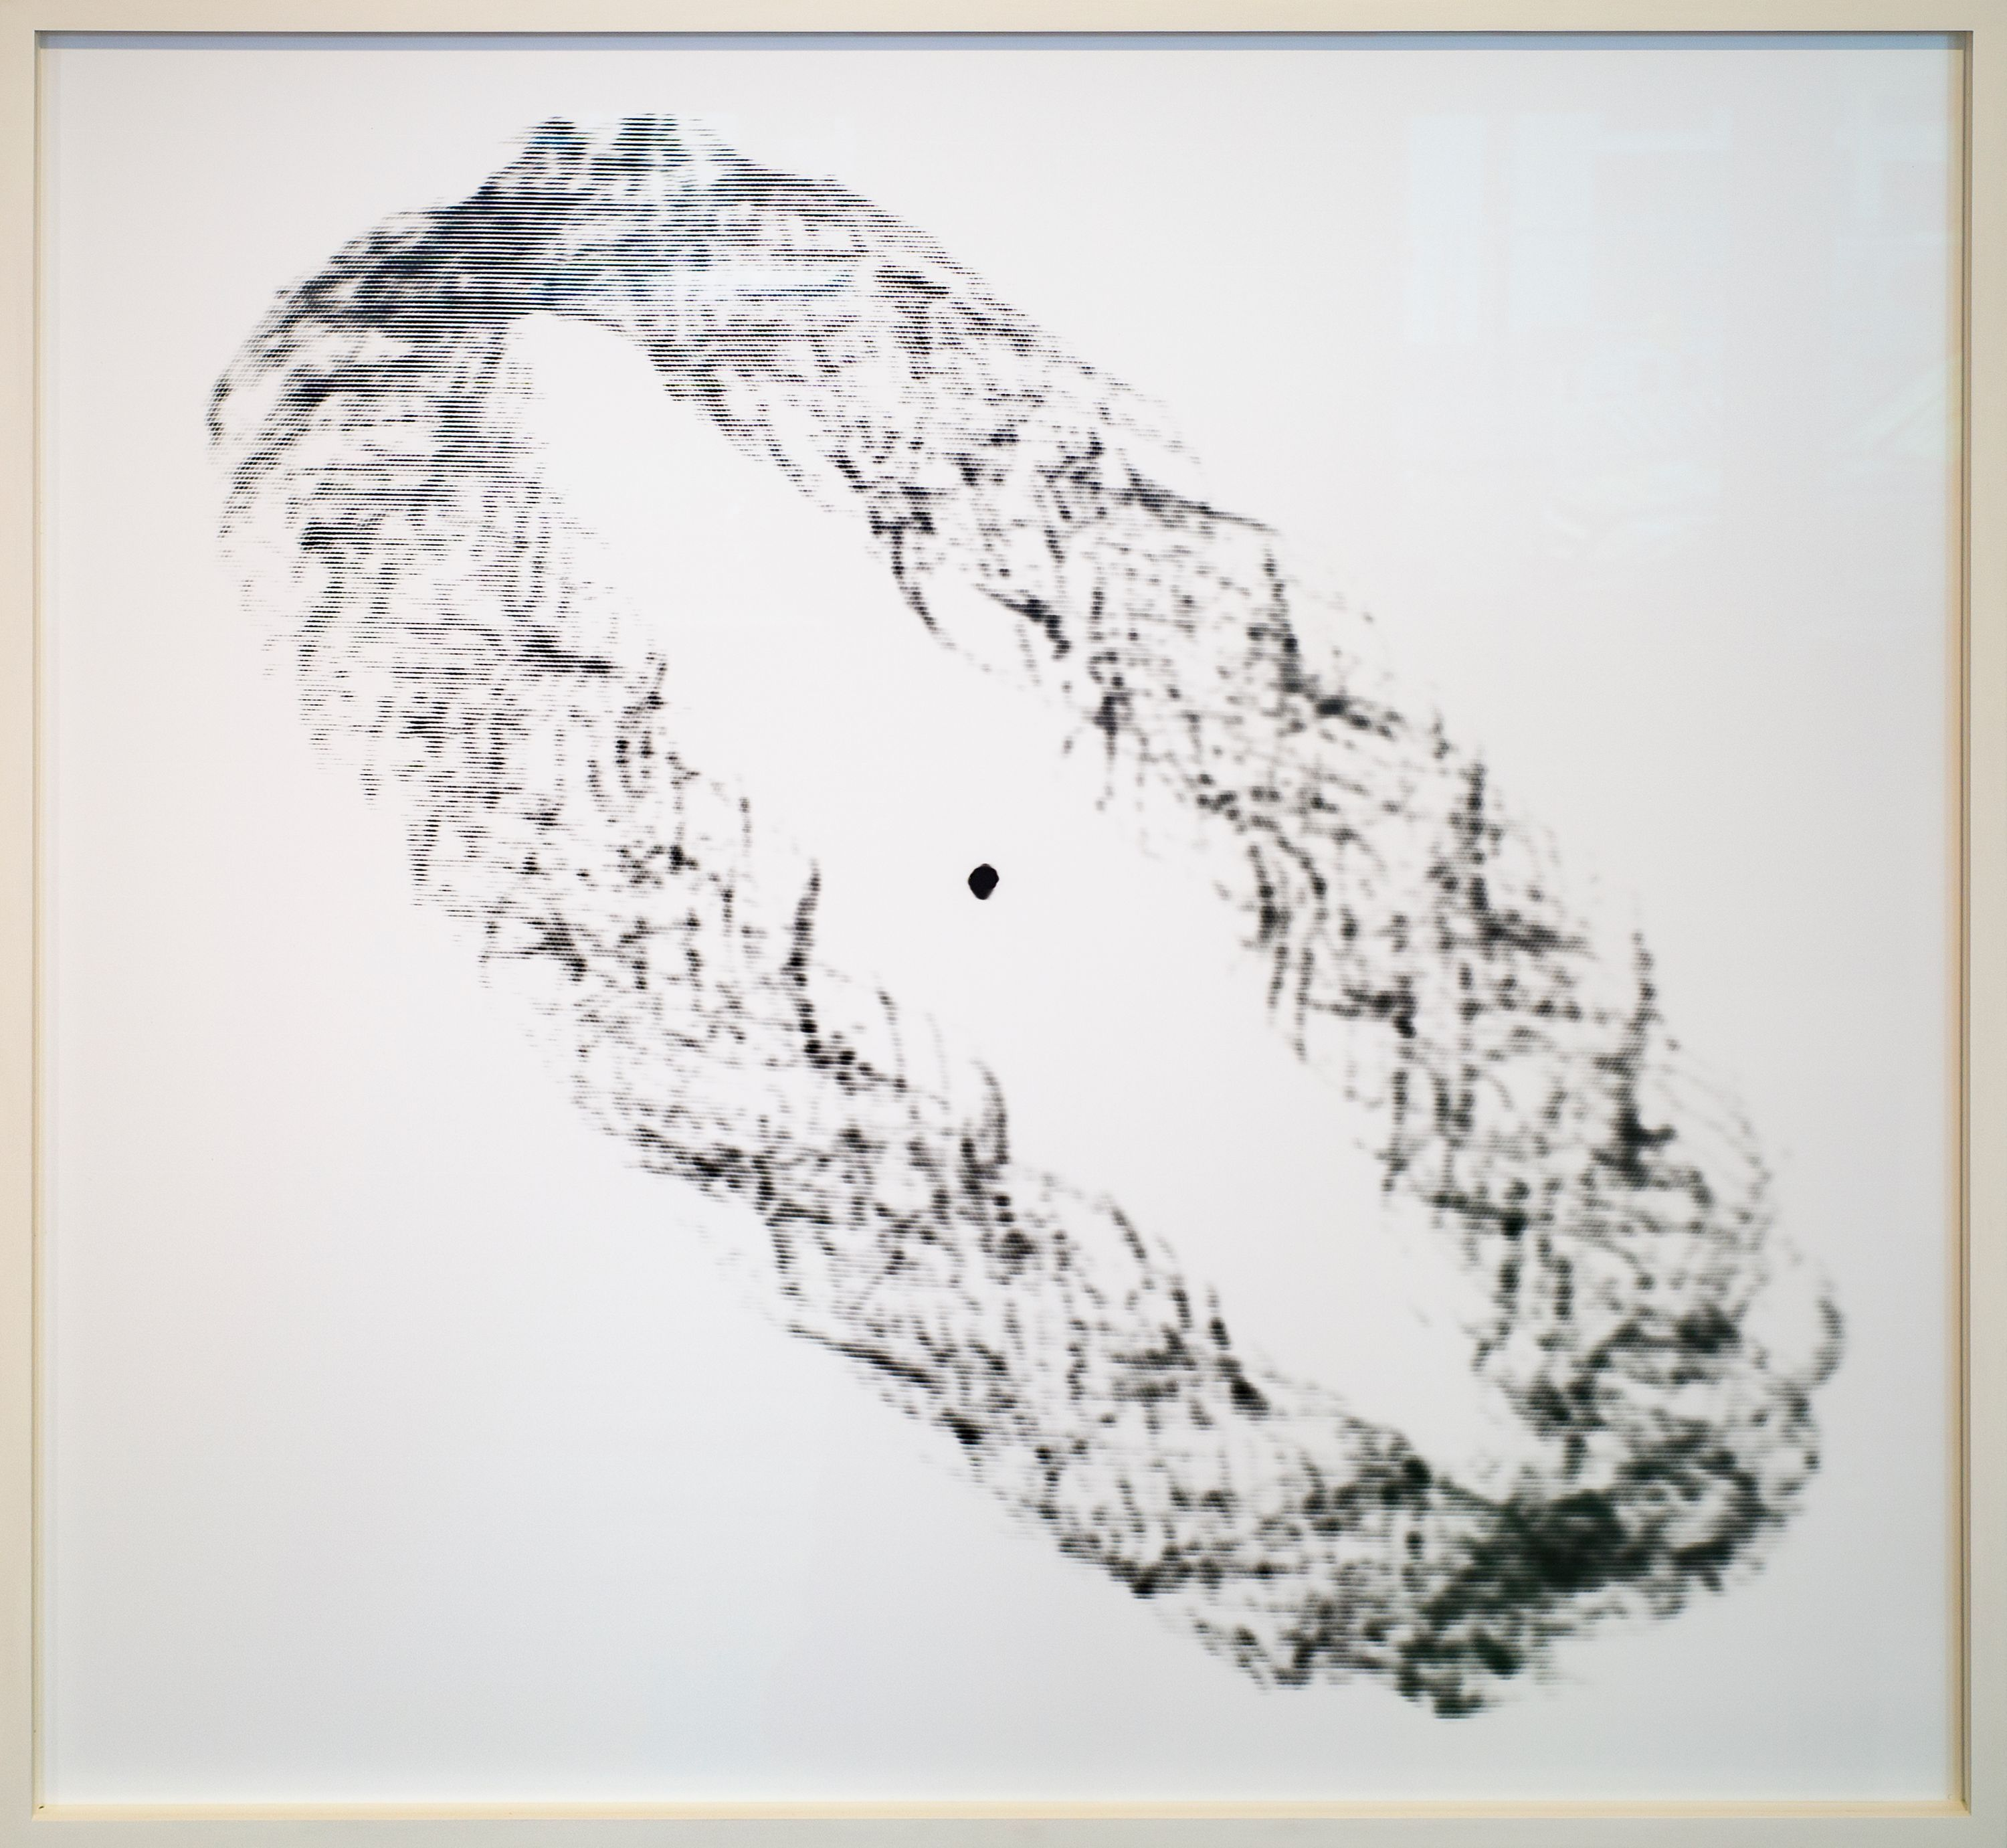 Origin Of Solar System by Antti Pussinen, Luisa Catucci Gallery (2 of 3)